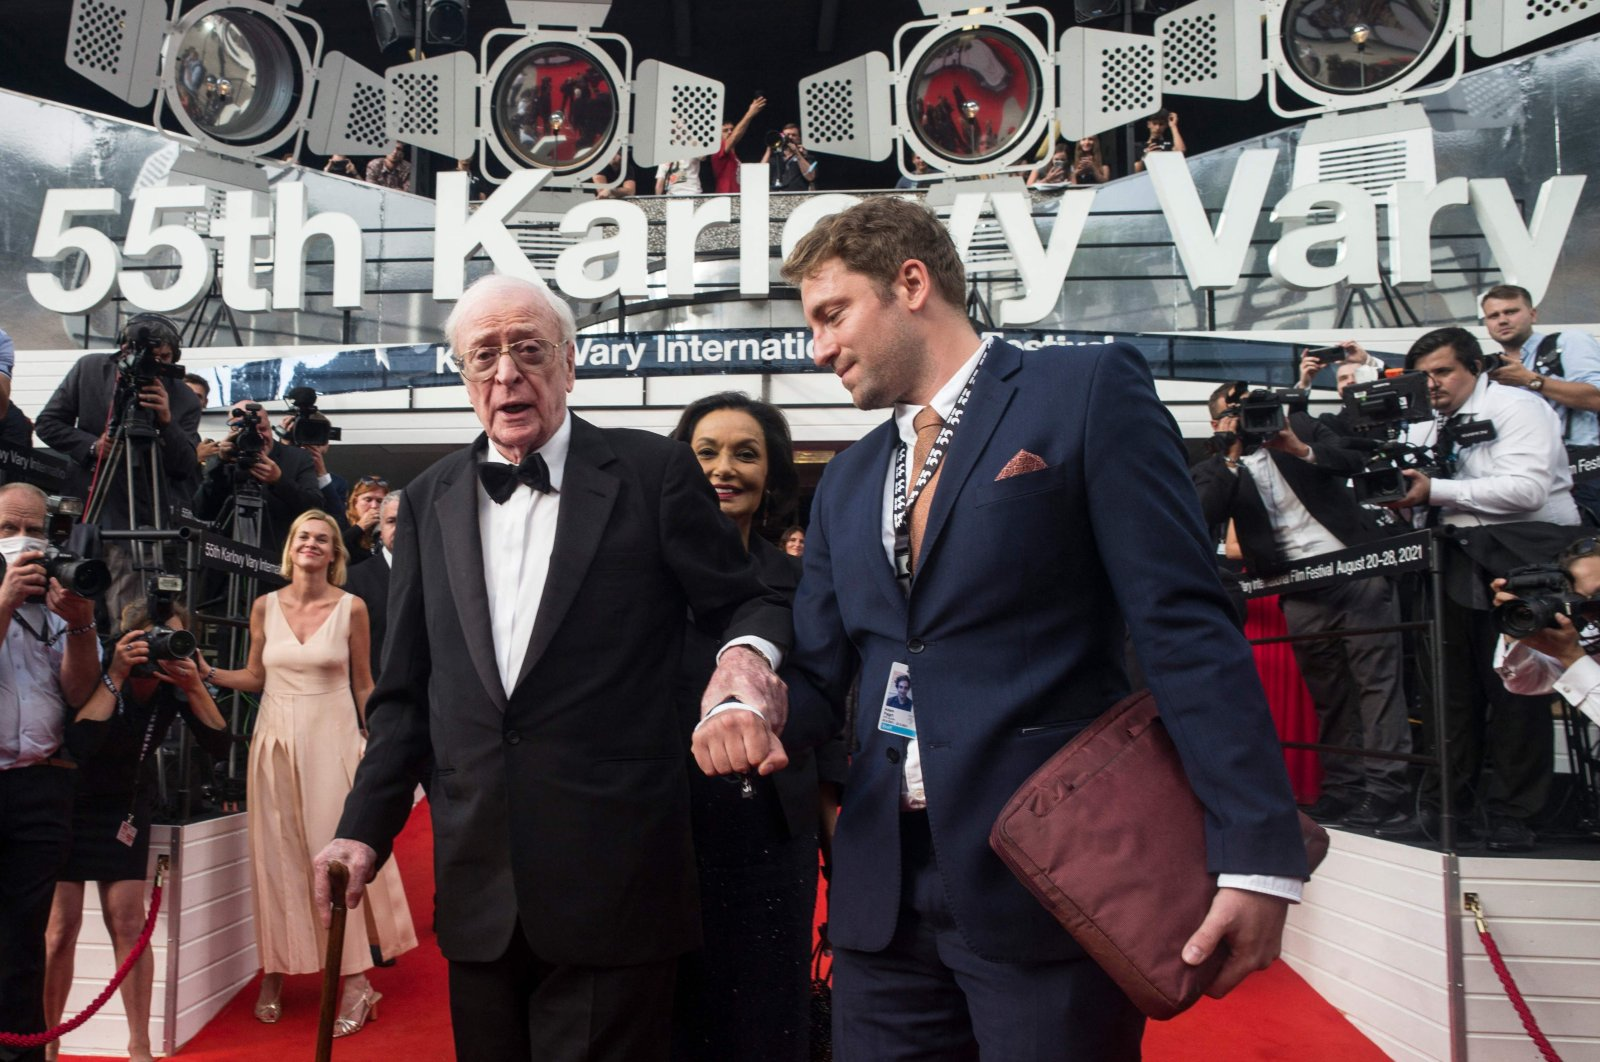 British film actor Michael Caine (L) poses on the red carpet prior to the opening of the 55th Karlovy Vary International Film Festival (KVIFF) in Karlovy Vary, Czech Republic, Aug. 20, 2021. (AFP Photo)